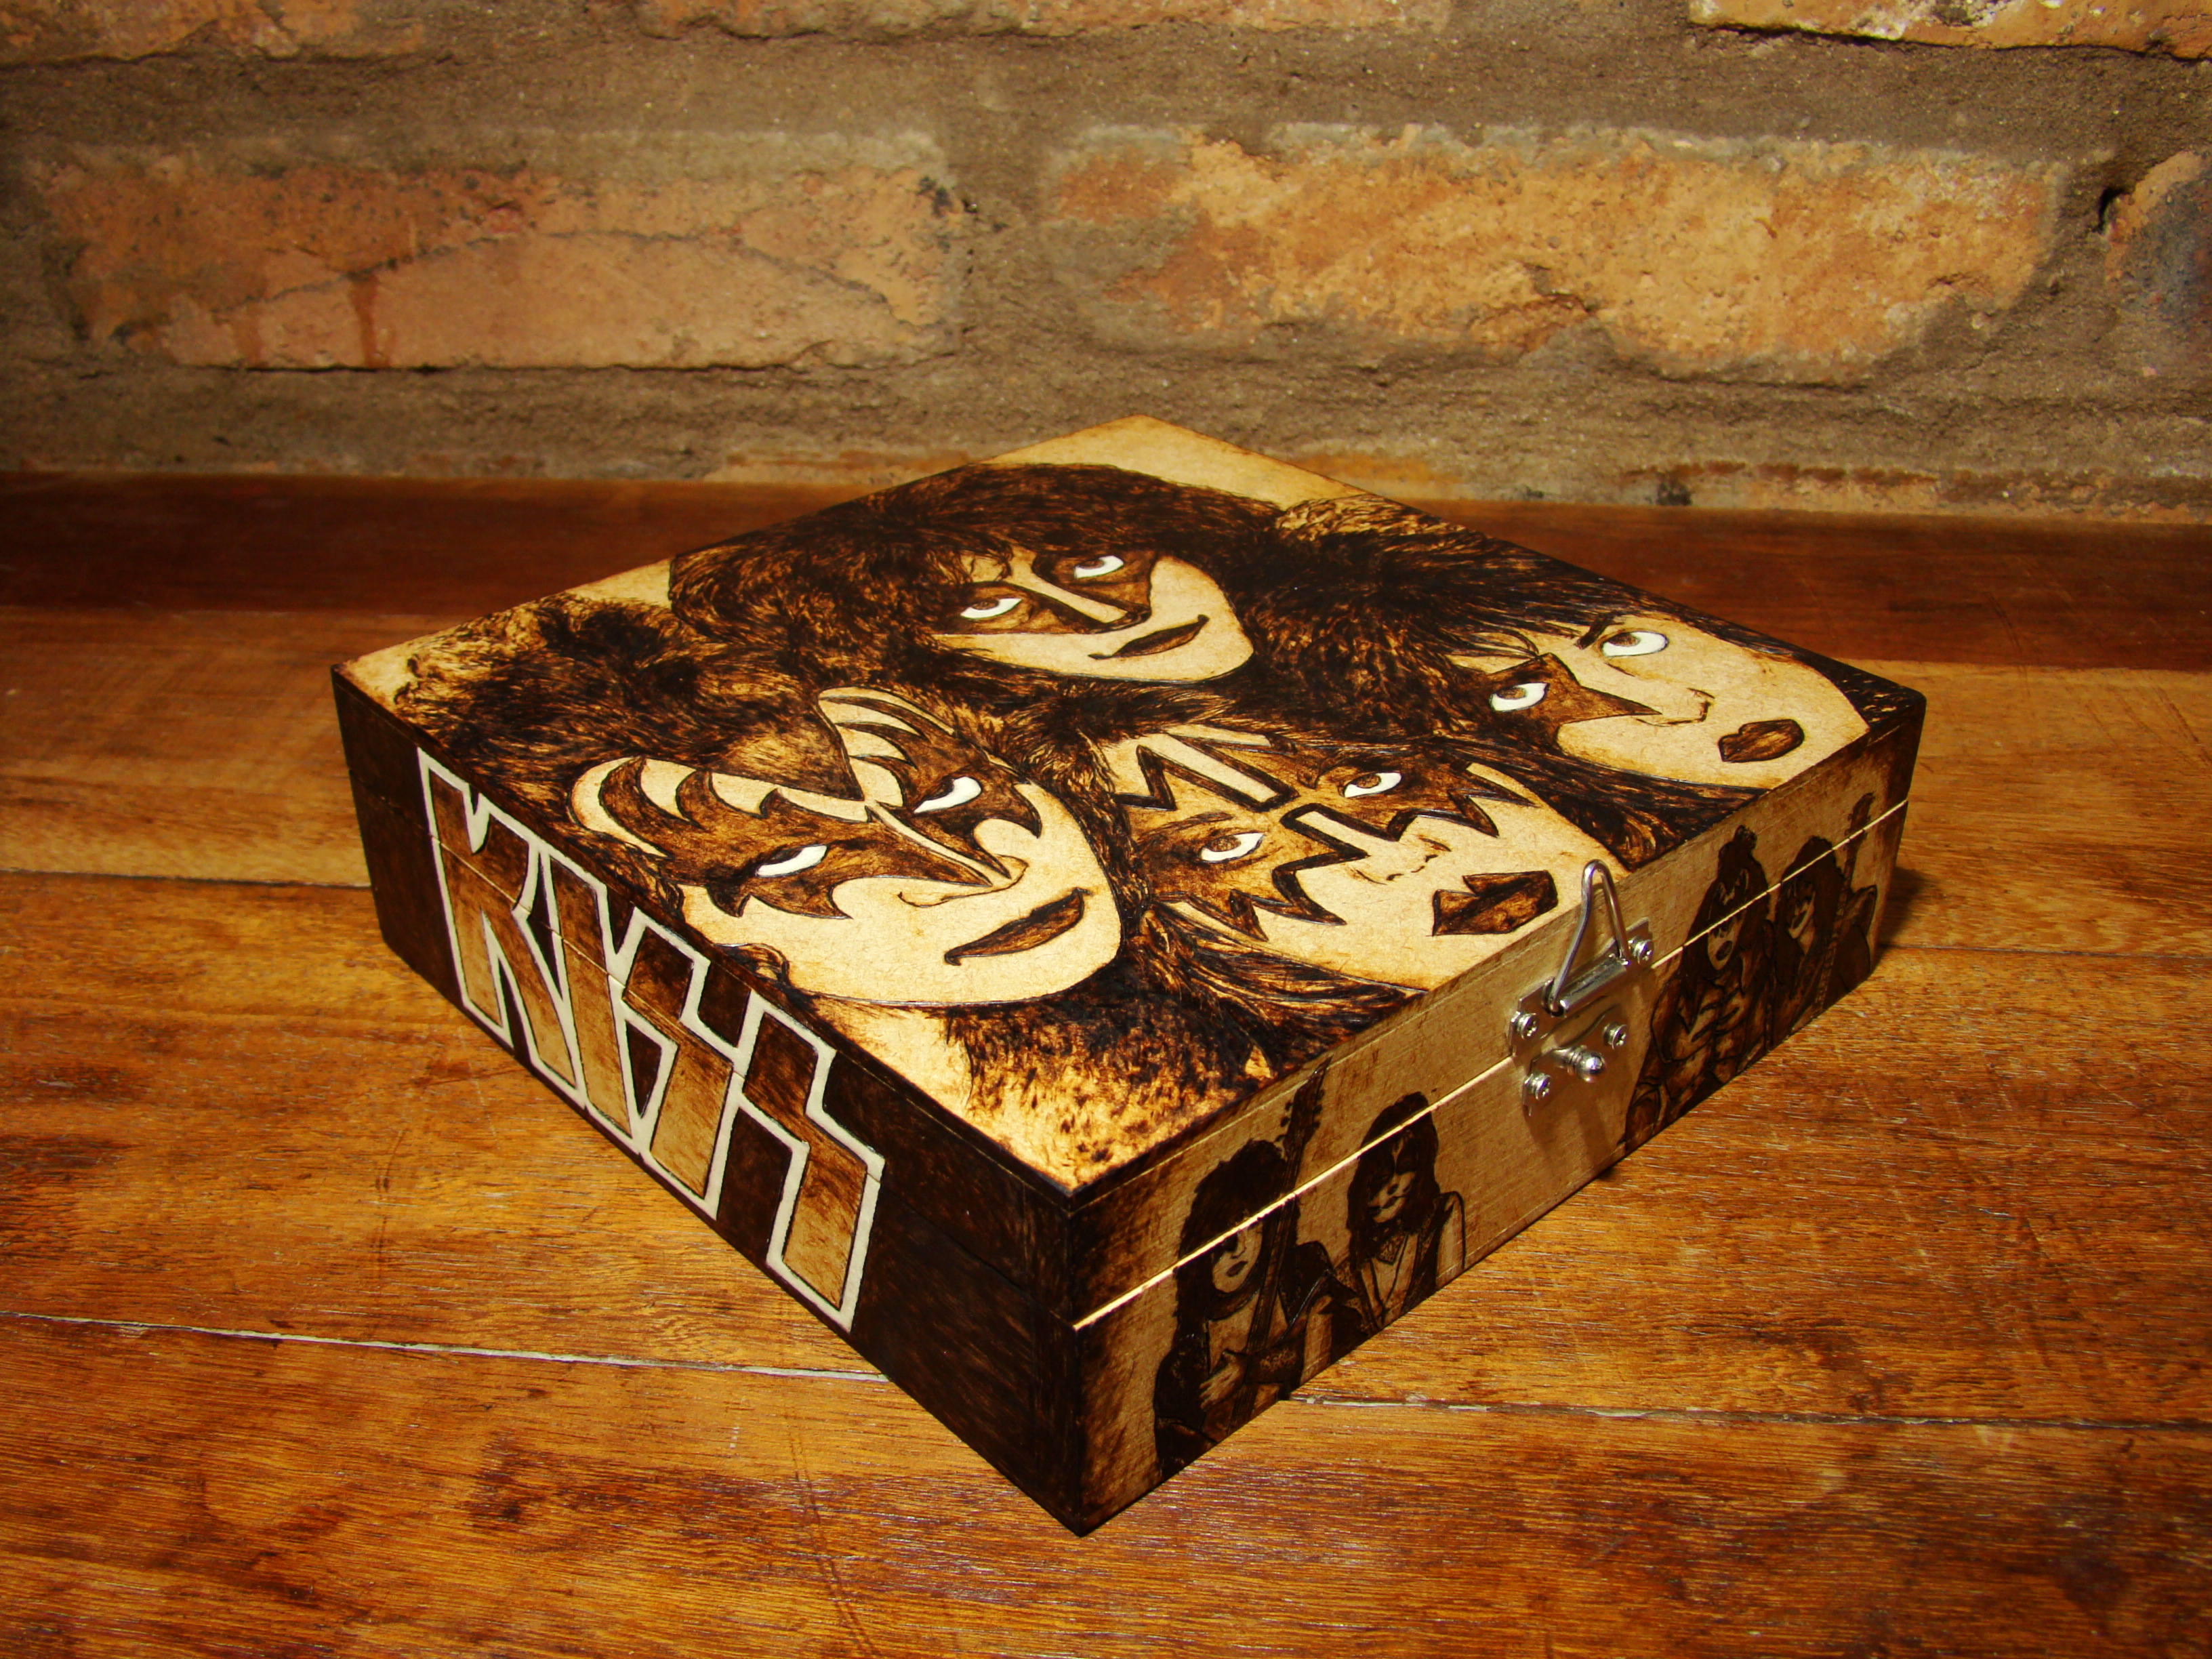 Picture of Wood Burning 101 - Techniques and Tricks